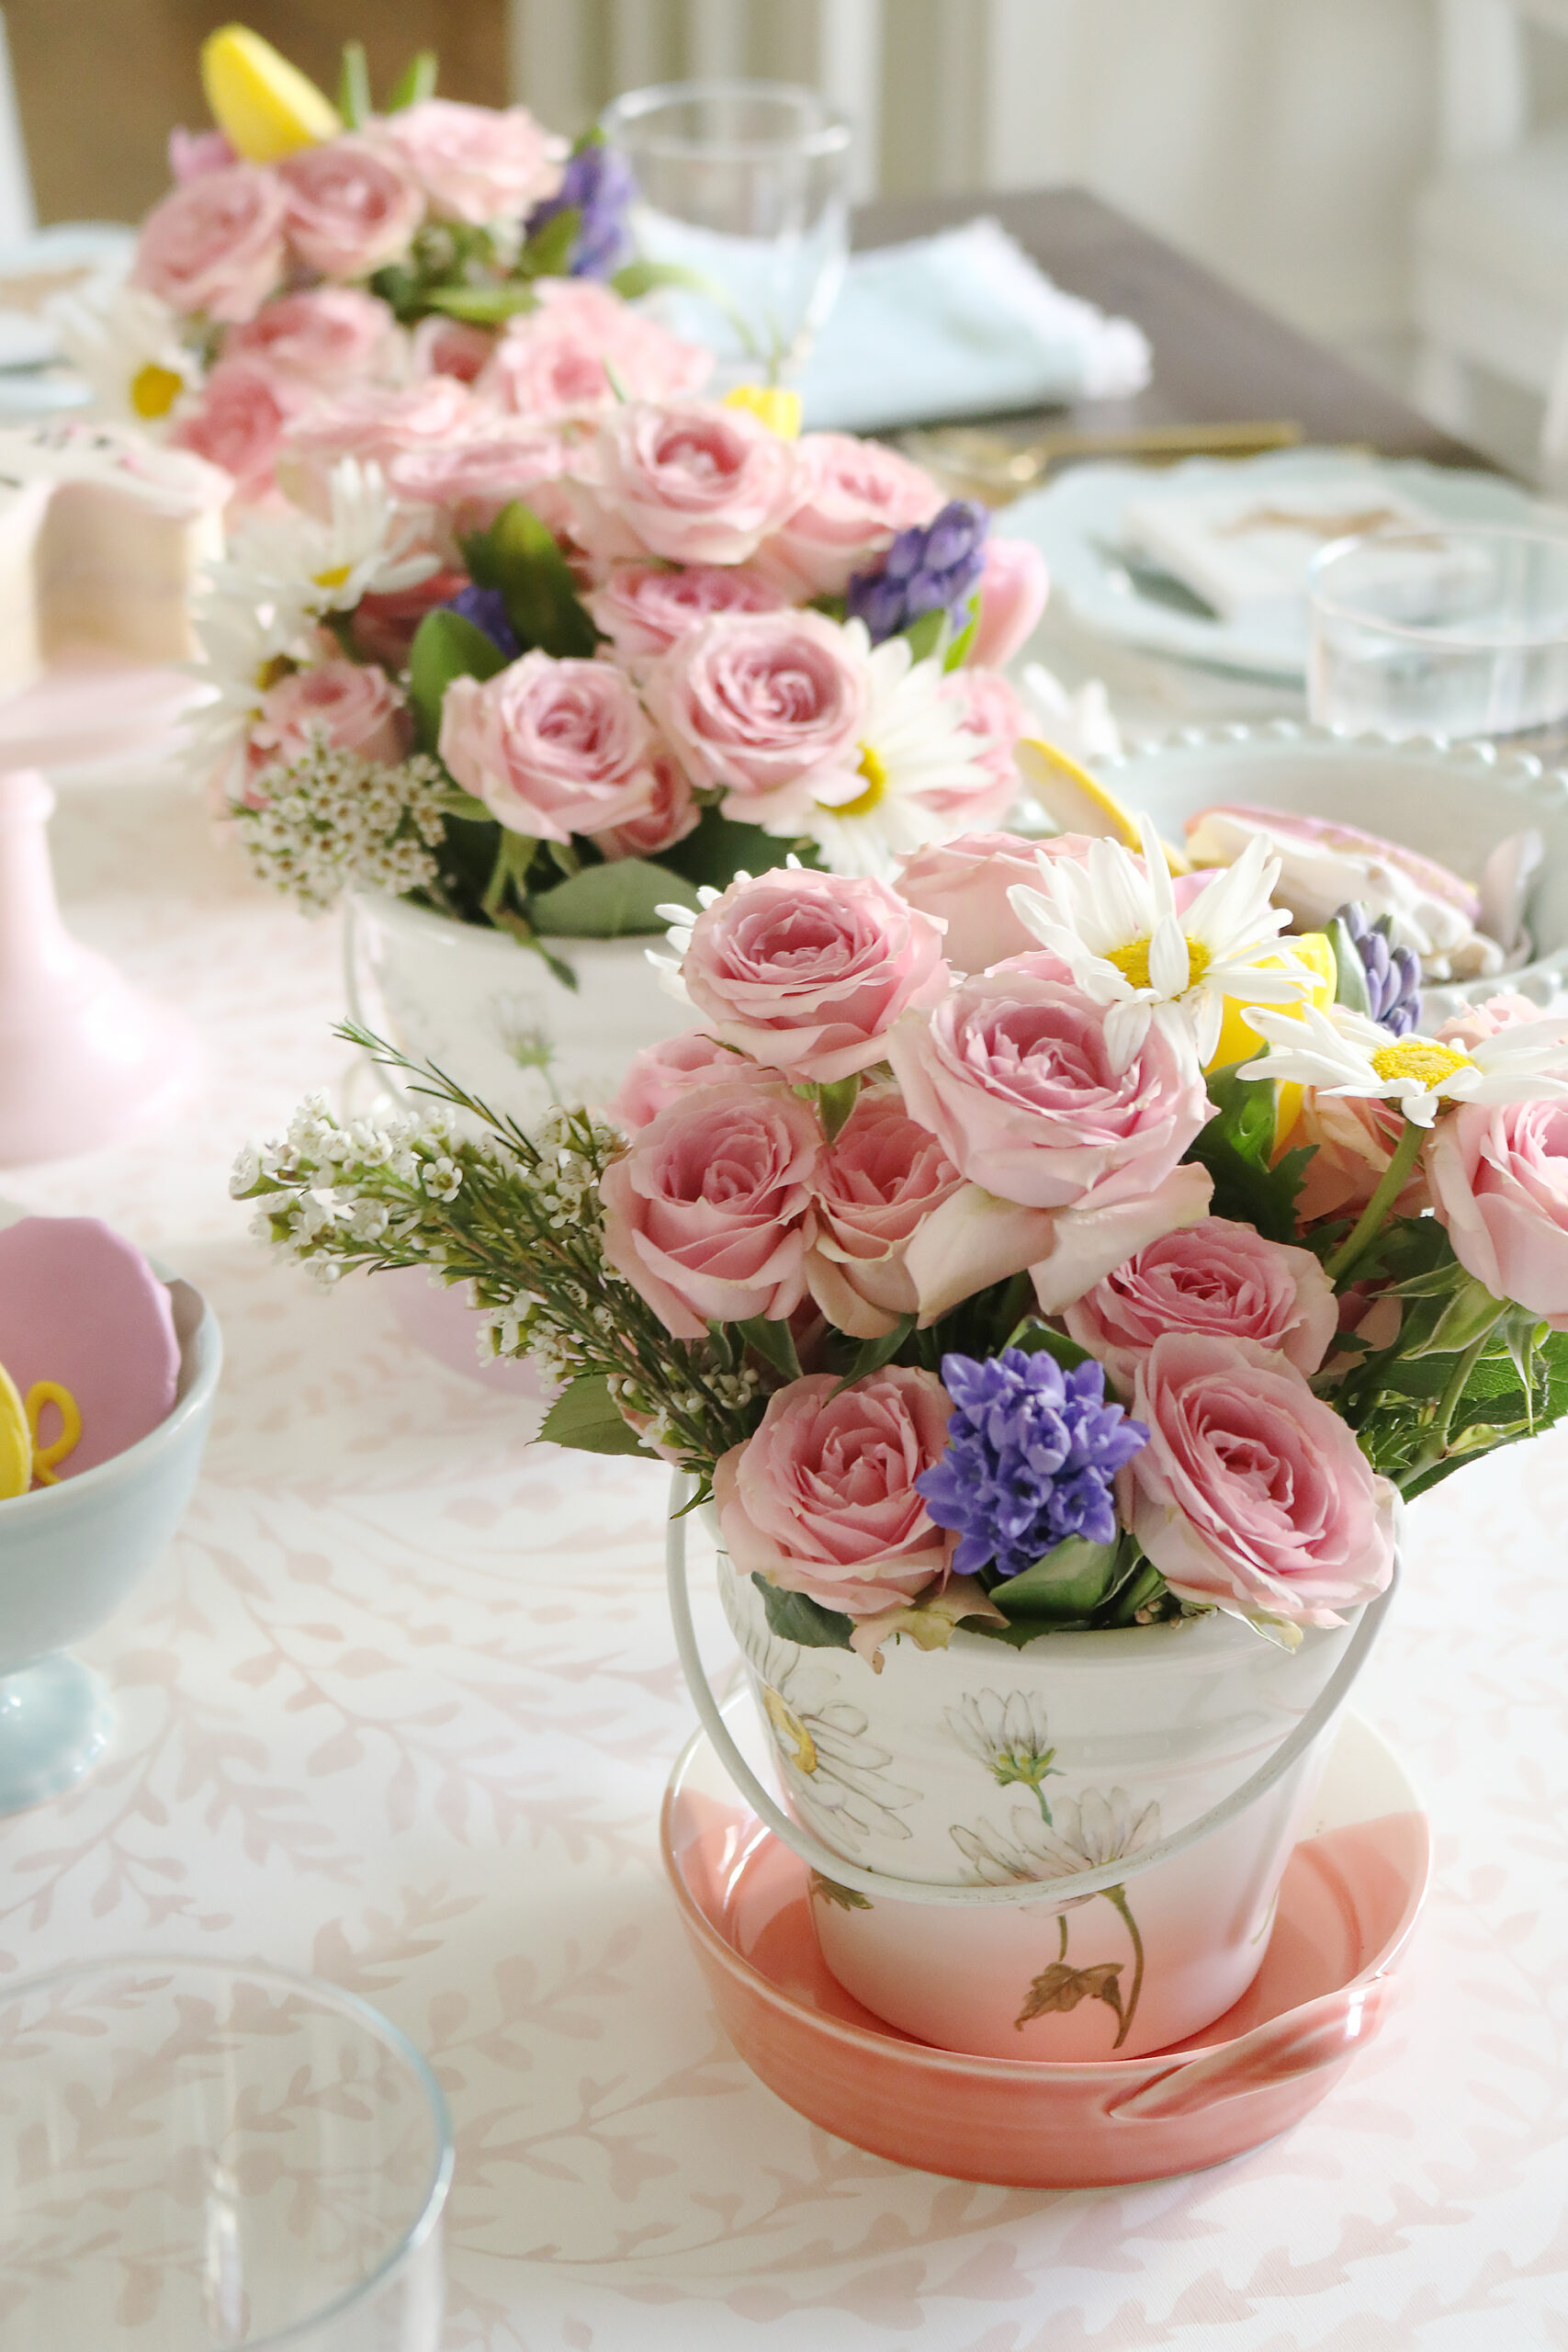 Playful Flowers and Cute Bunnies make a Happy Spring Easter Table, pink roses and daisy, little bunnies, easter table space ideas || Darling Darleen Top CT Lifestyle Blogger #darlingdarleen #eastertable